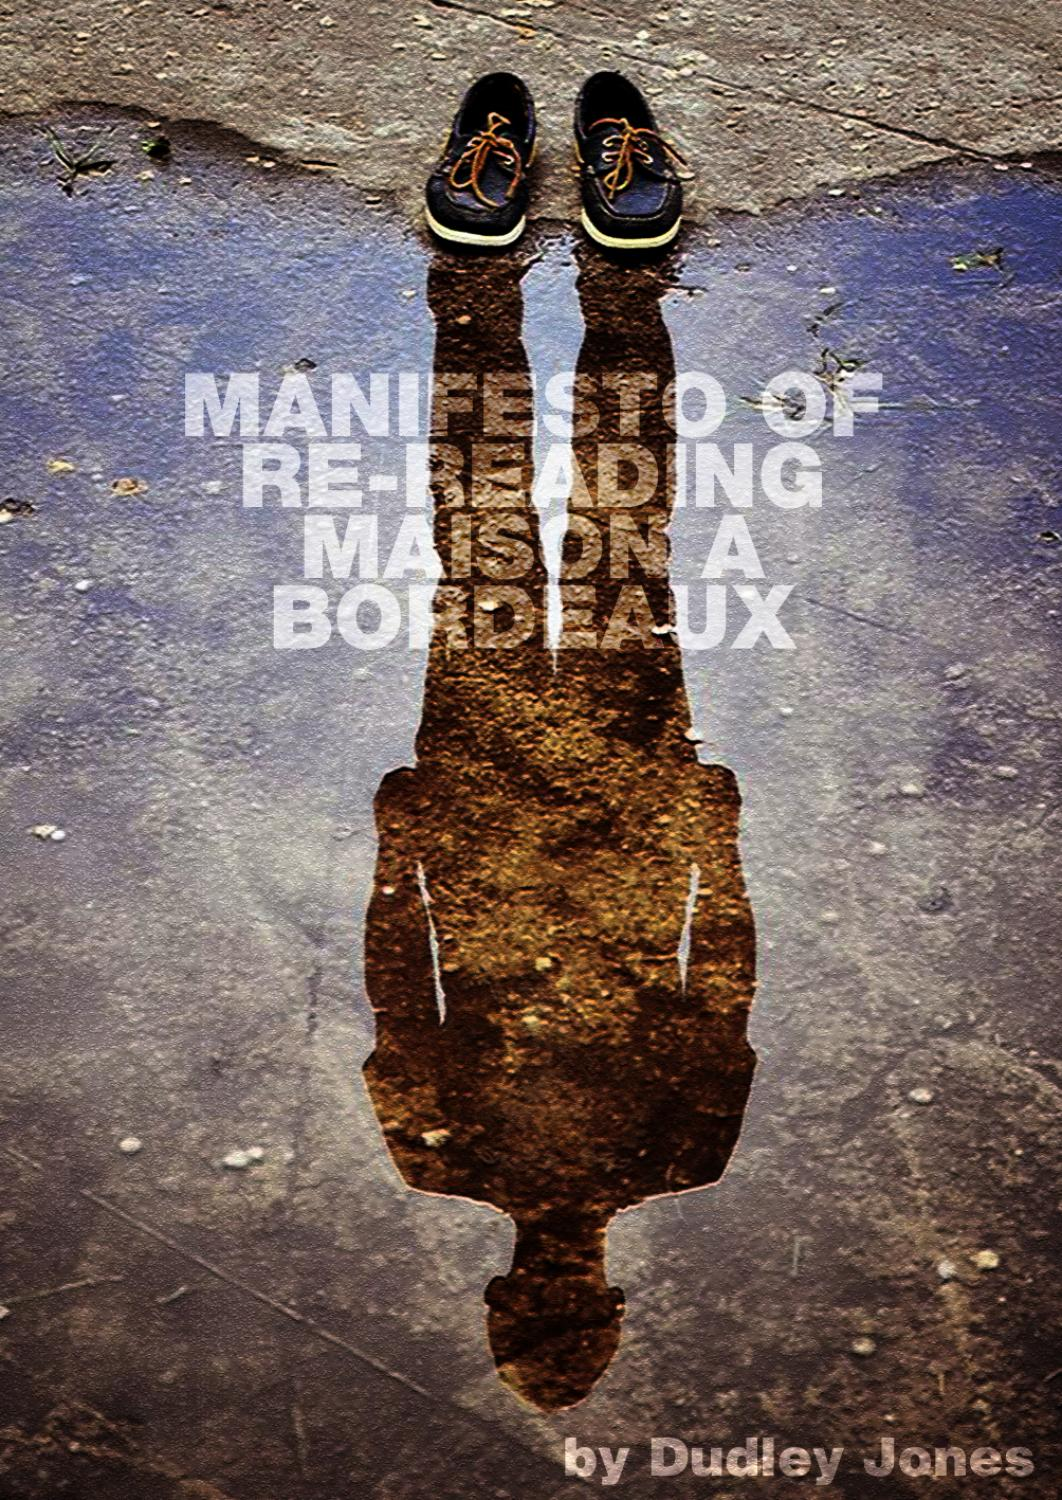 Manifesto Rereading the story Maison a Bordeaux by Dudley Jones